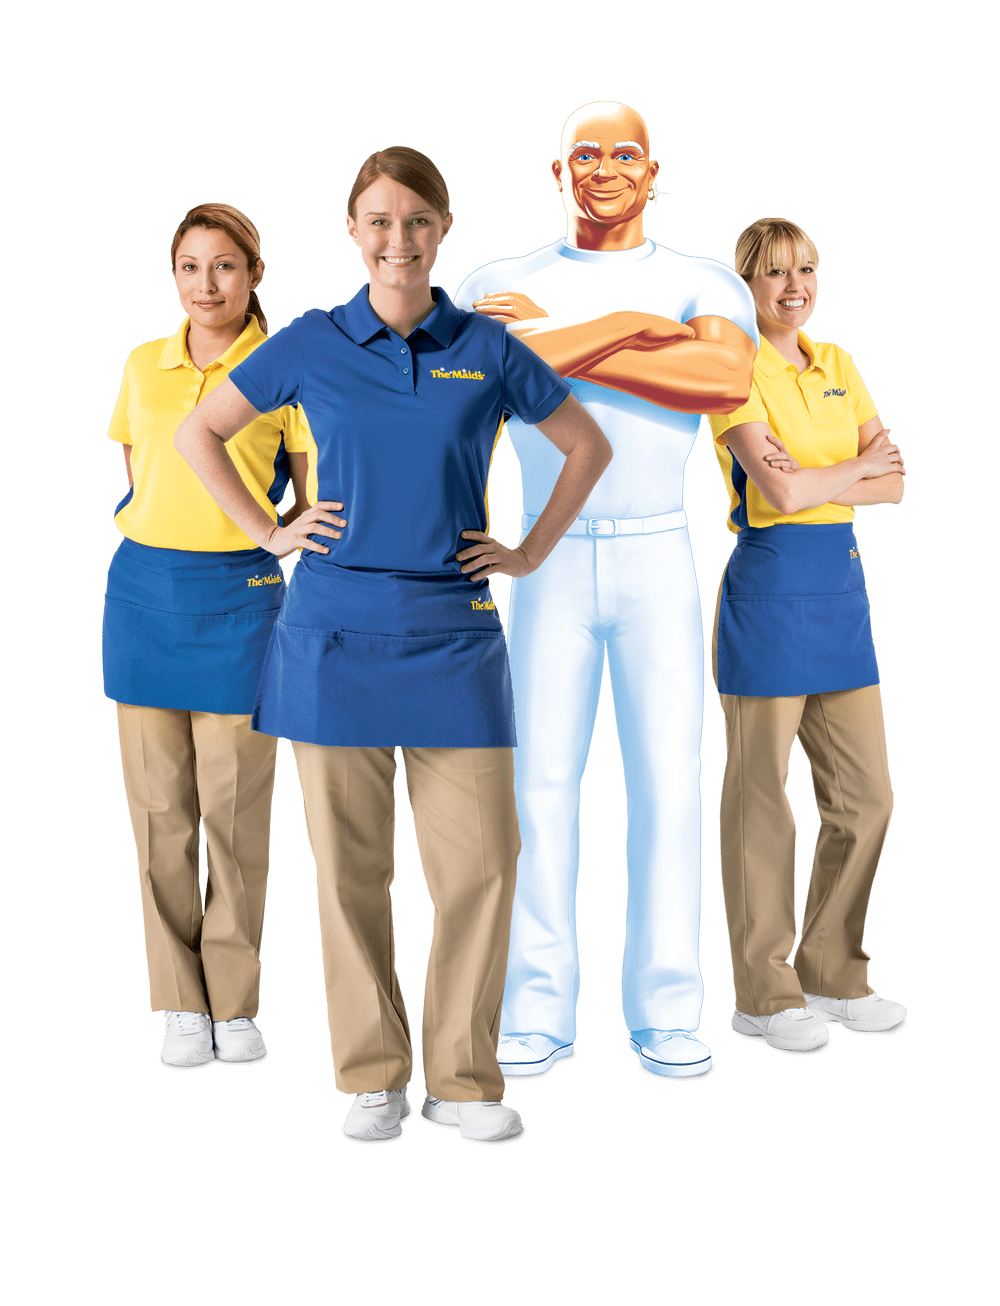 The Maids House Cleaning - The Maids in St. Charles County Home Cleaning